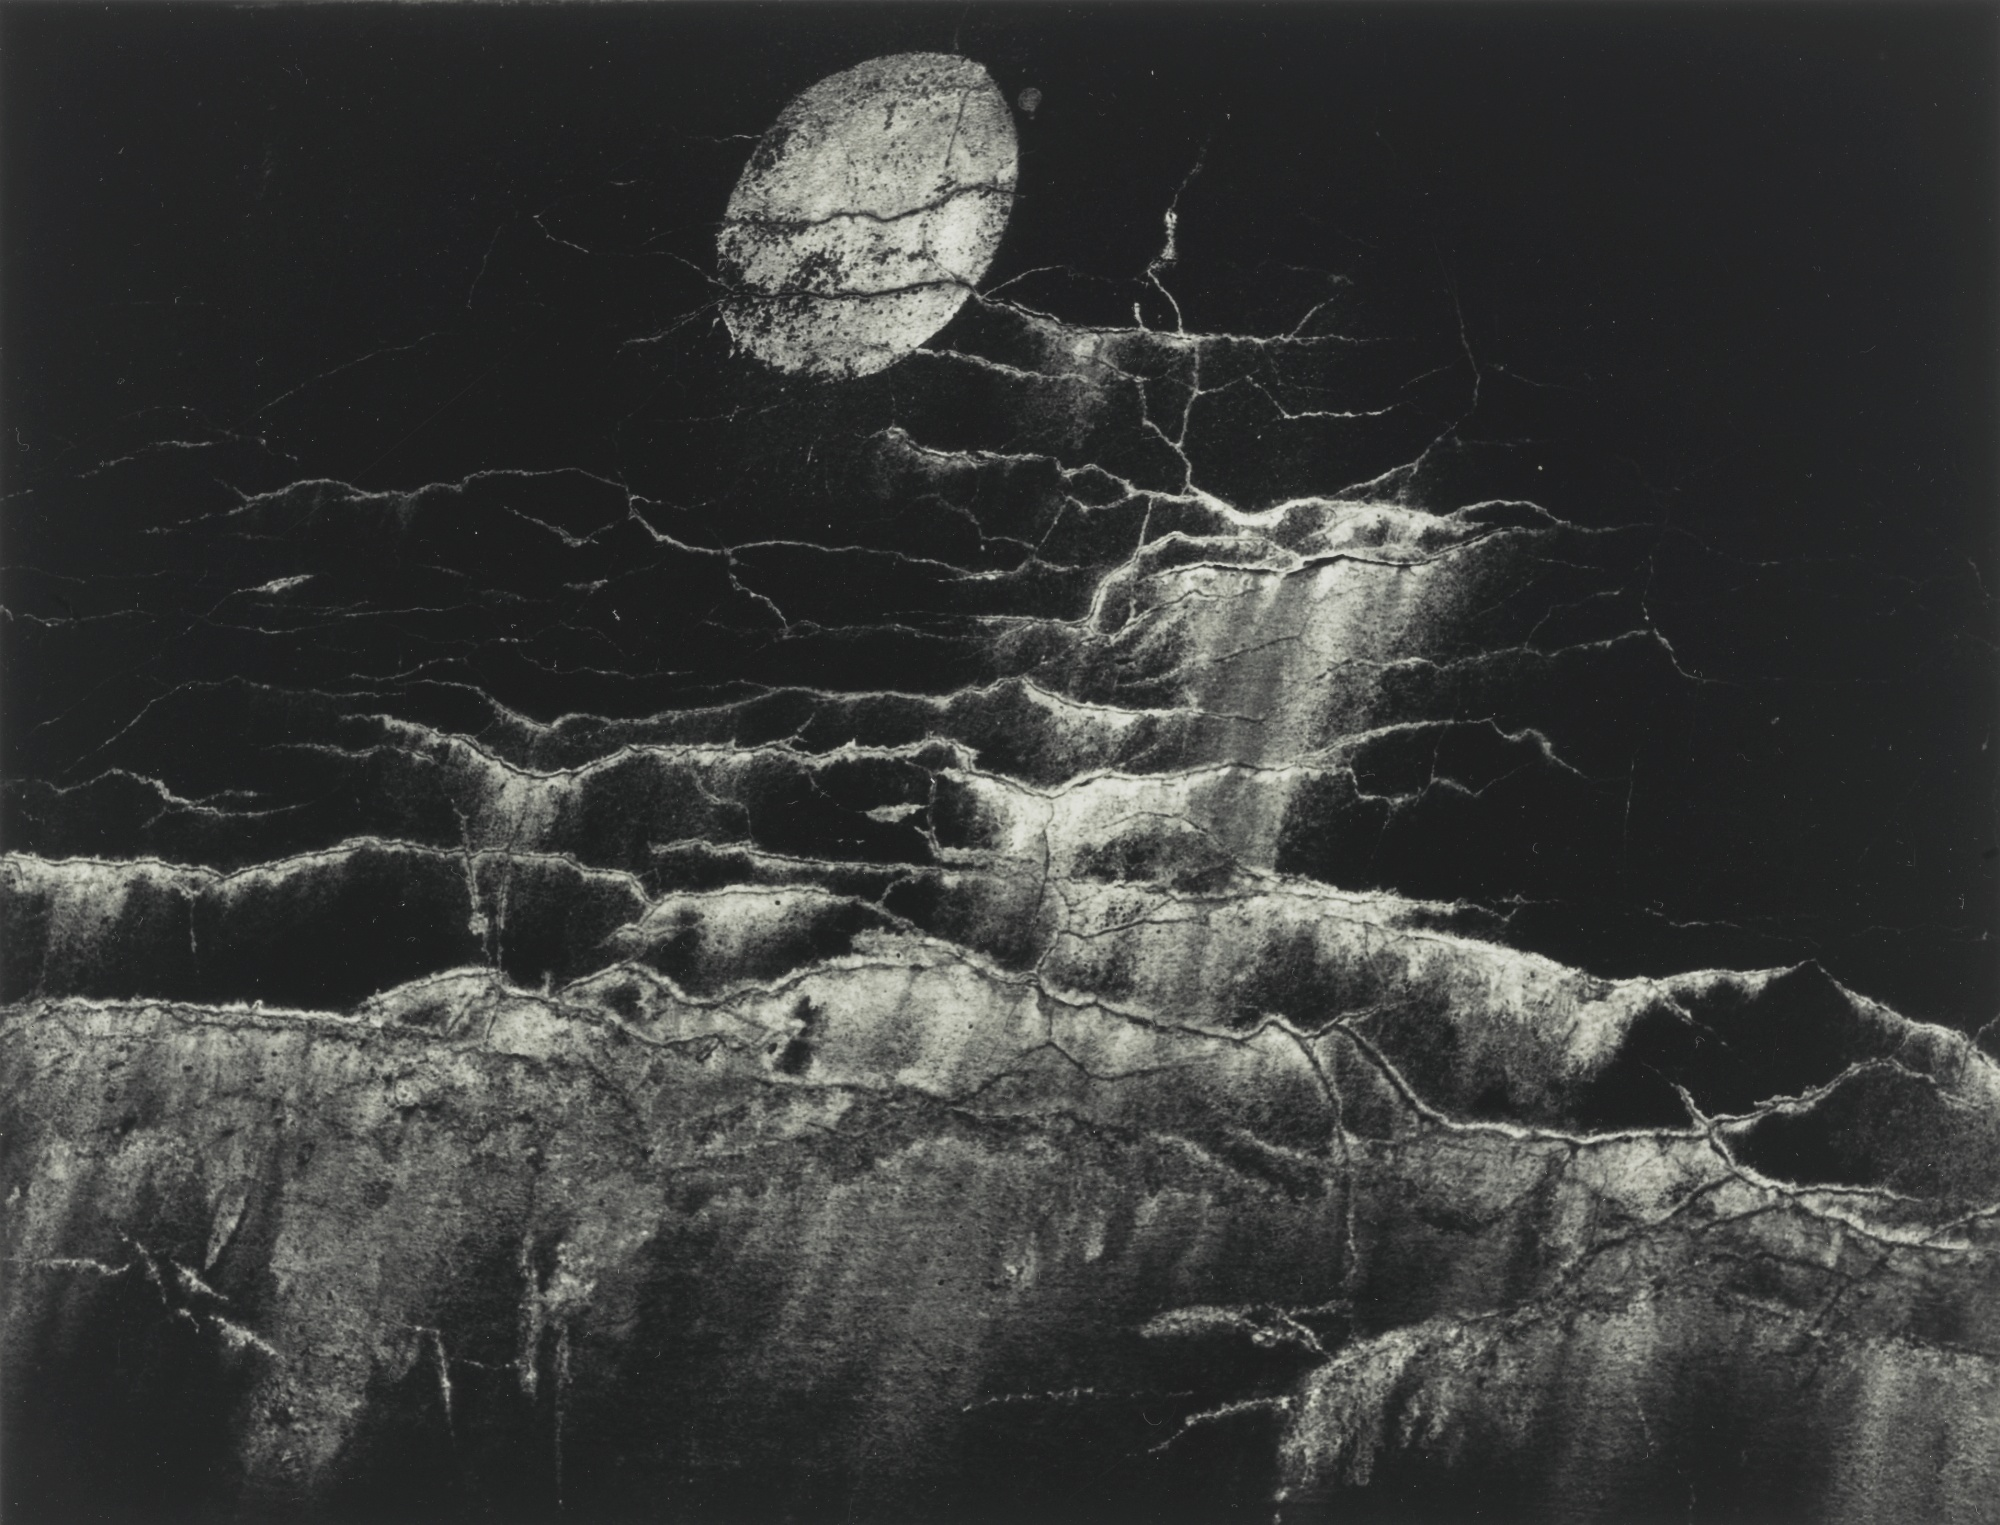 Minor White-Moon And Wall Encrustation- Pultneyville, New York-1964